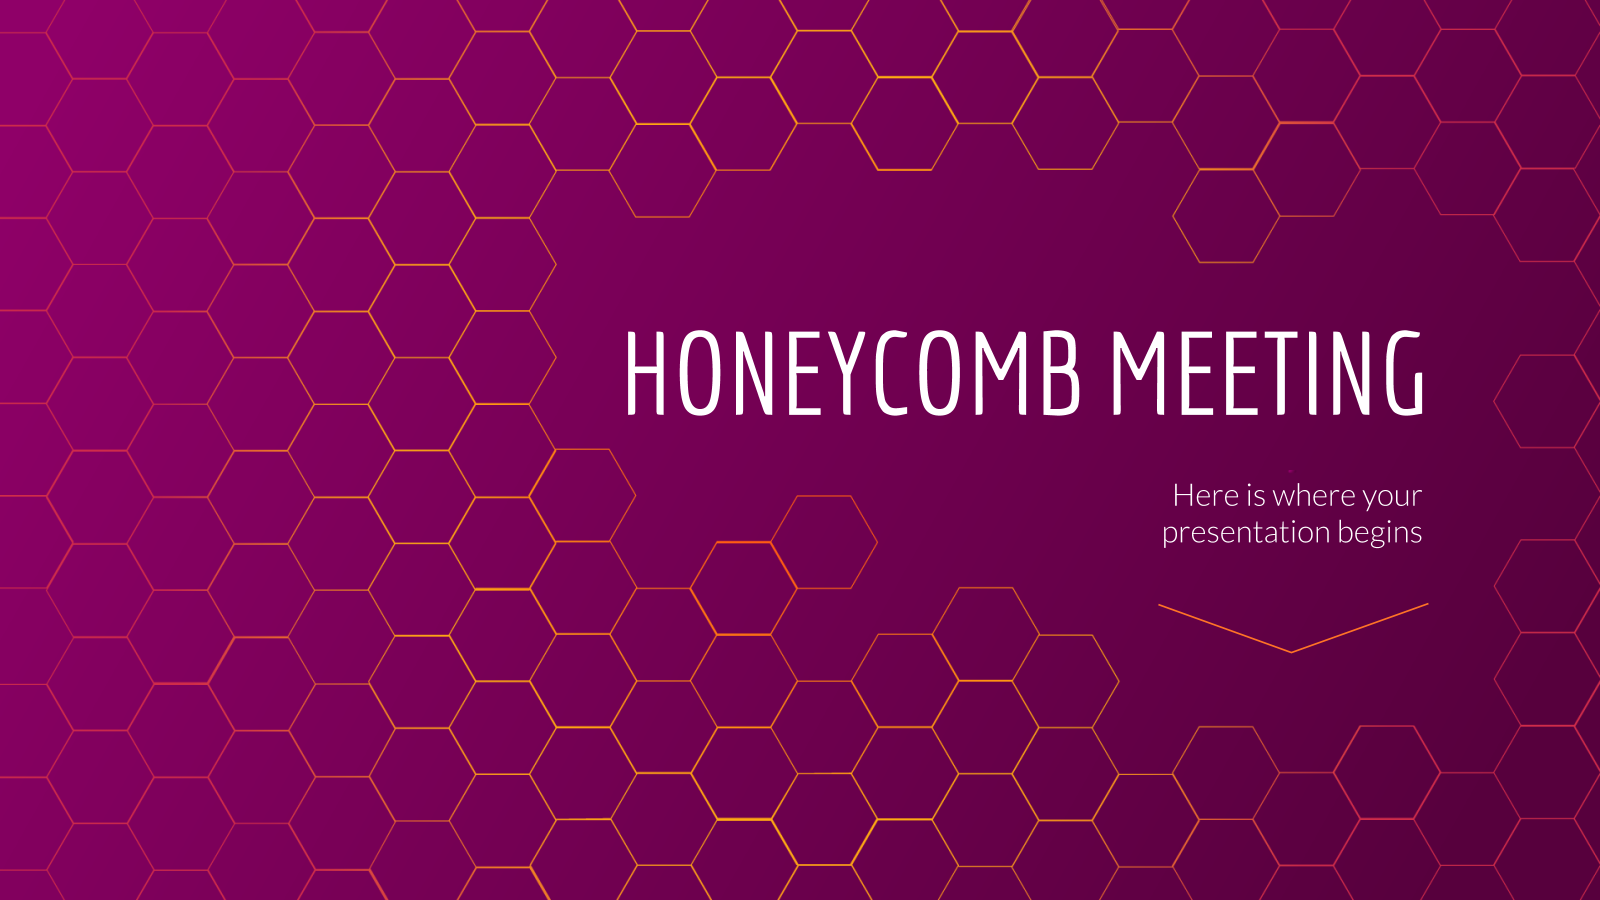 Honeycomb Meeting presentation template